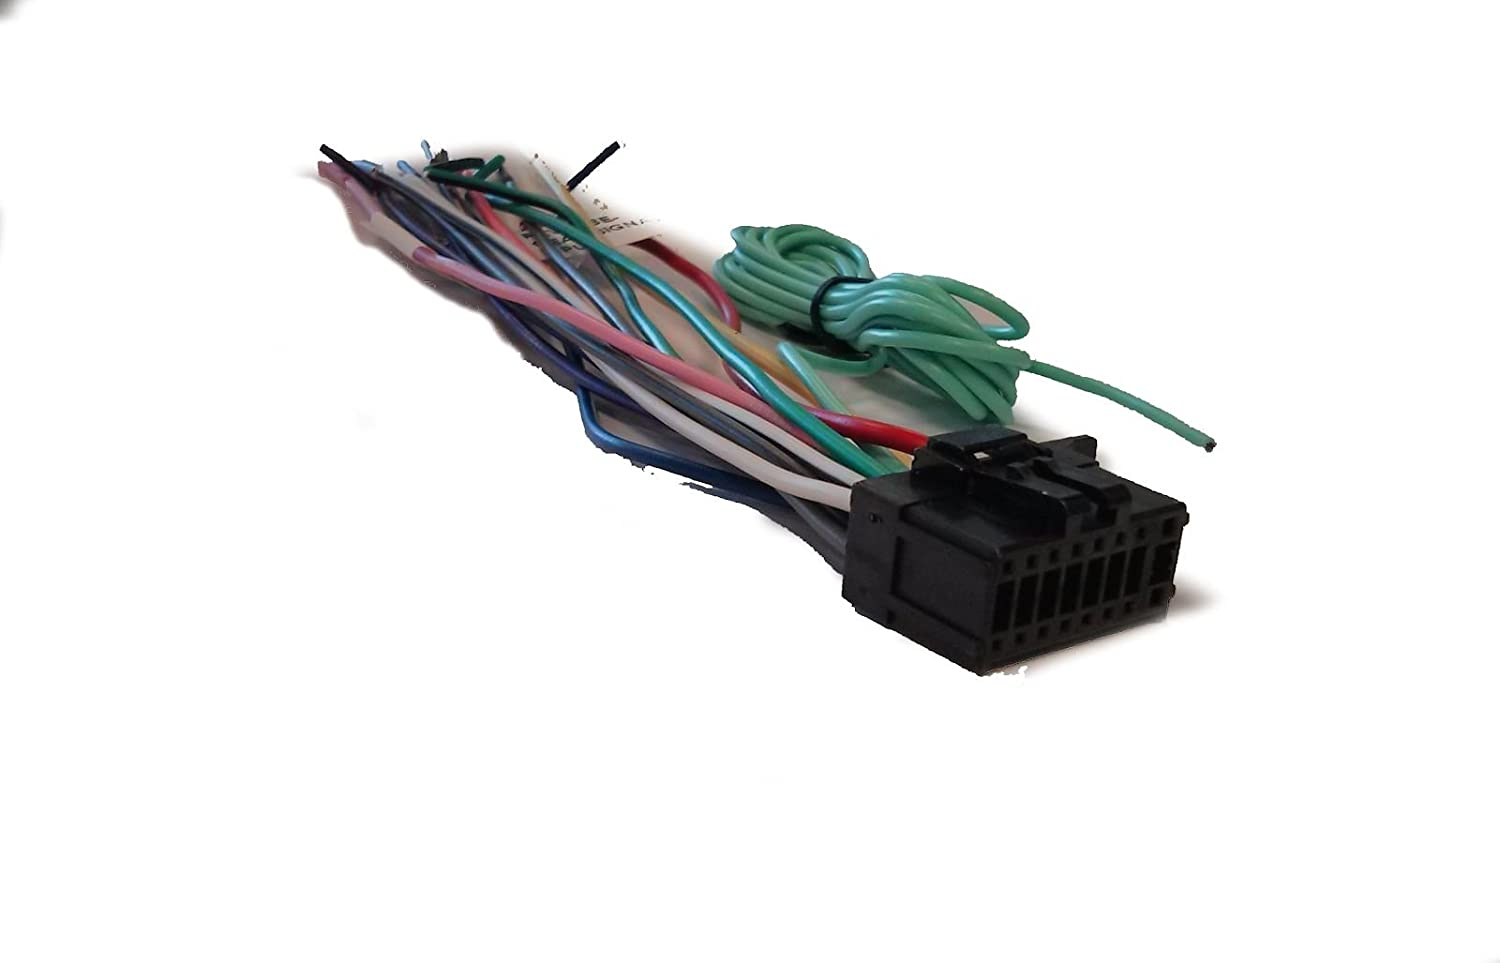 61s%2B2yUu BL._SL1500_ amazon com pioneer wire harness for sph da210 sph da100 sph da200 pioneer sph da210 wiring diagram at bayanpartner.co